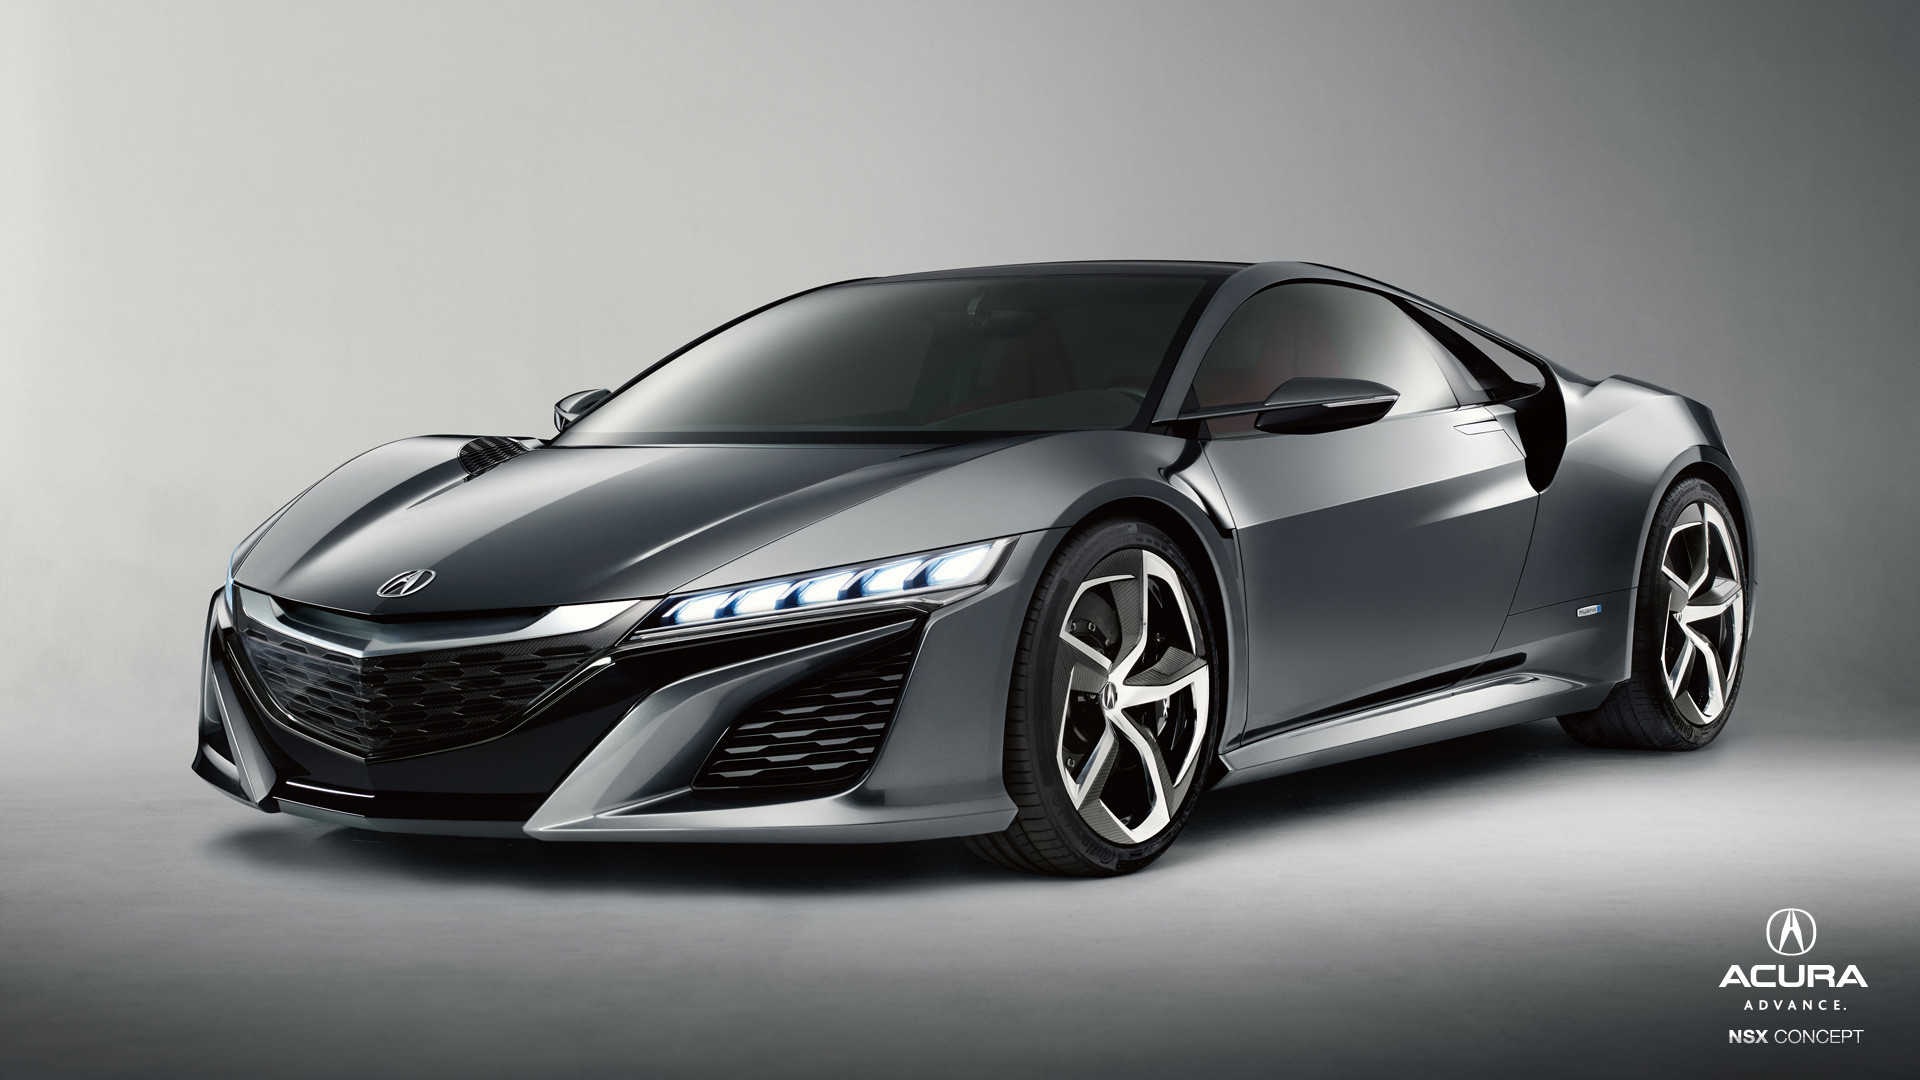 Res: 1920x1080, Acura NSX 2013 Wallpaper HD. Car Wallpaper Source